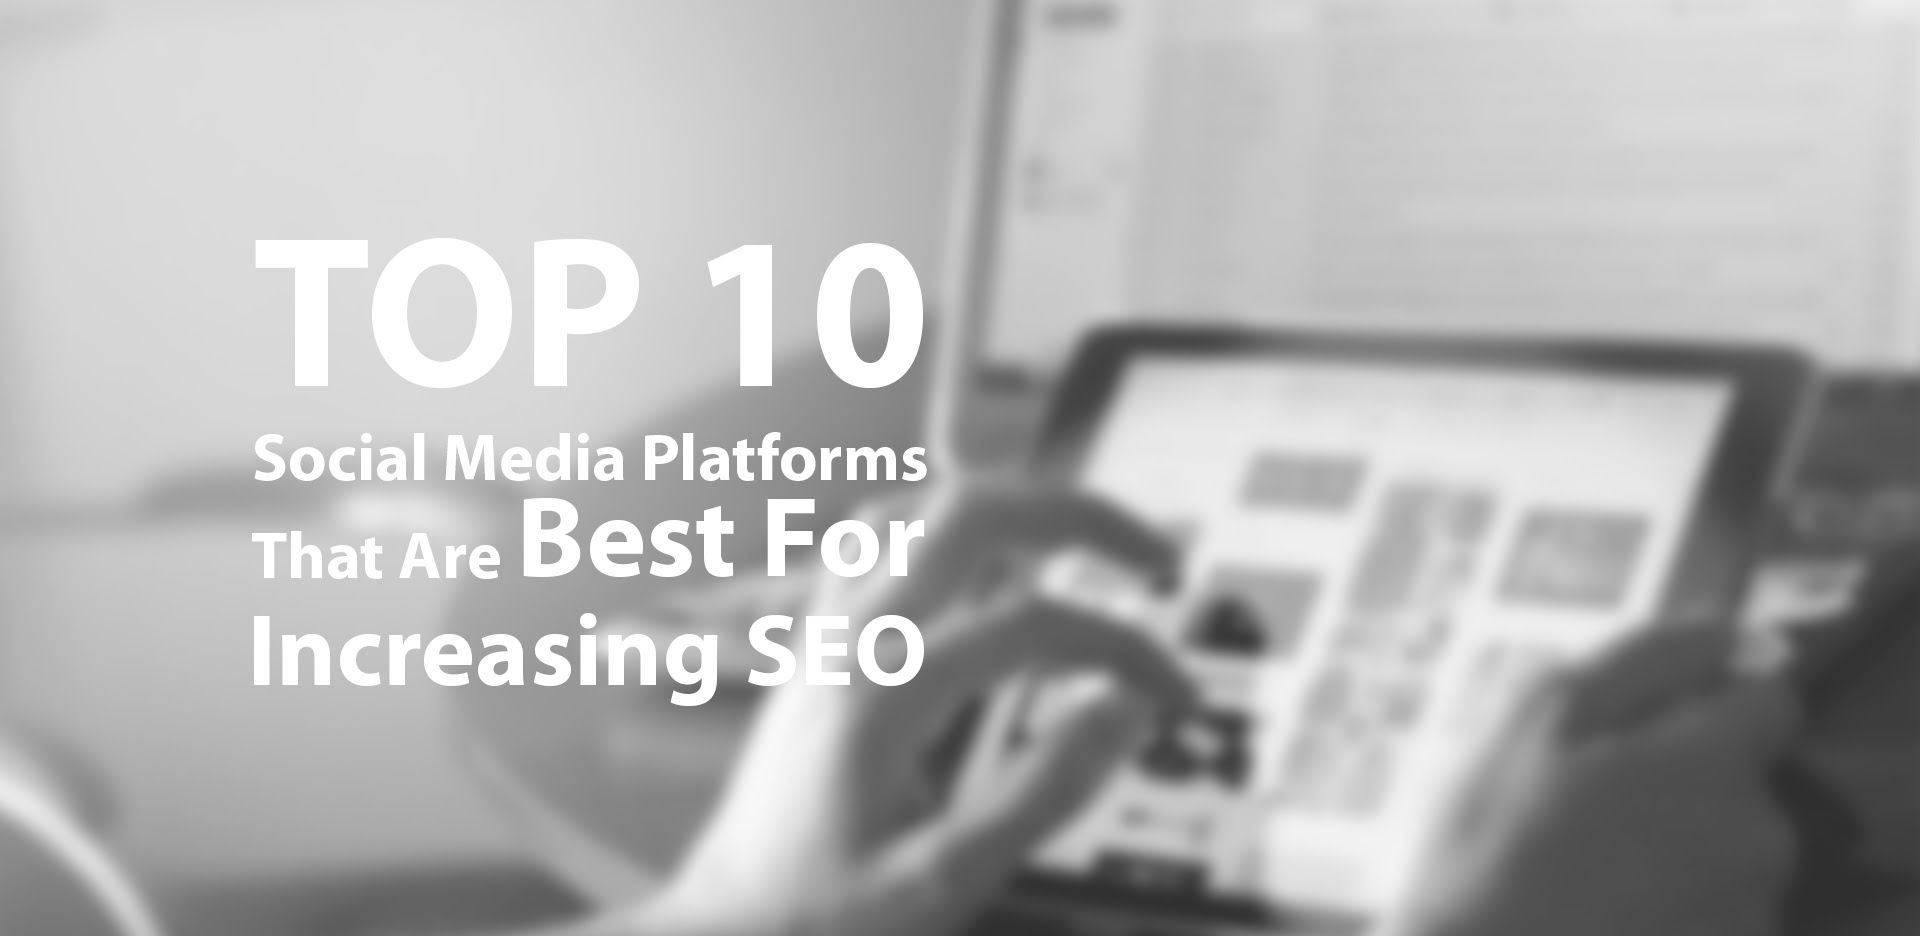 Top 10 Social Media Platforms That Are Best For Increasing SEO